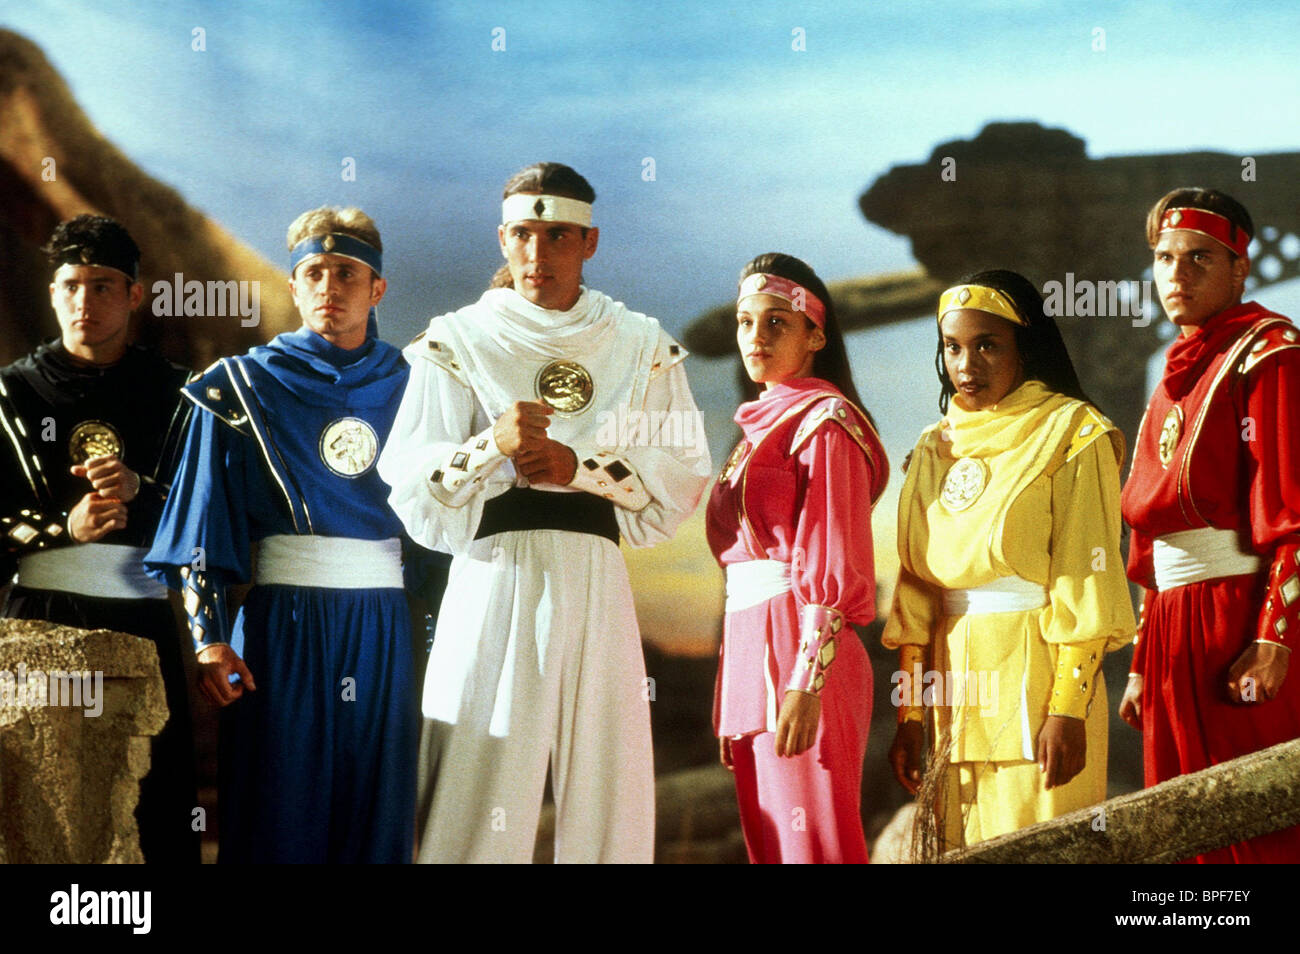 JOHNNY YONG BOSCH, DAVID YOST, JASON DAVID FRANK, AMY JO JOHNSON, KARAN ASHLEY, STEVE CARDENAS, MIGHTY MORPHIN POWER - Stock Image